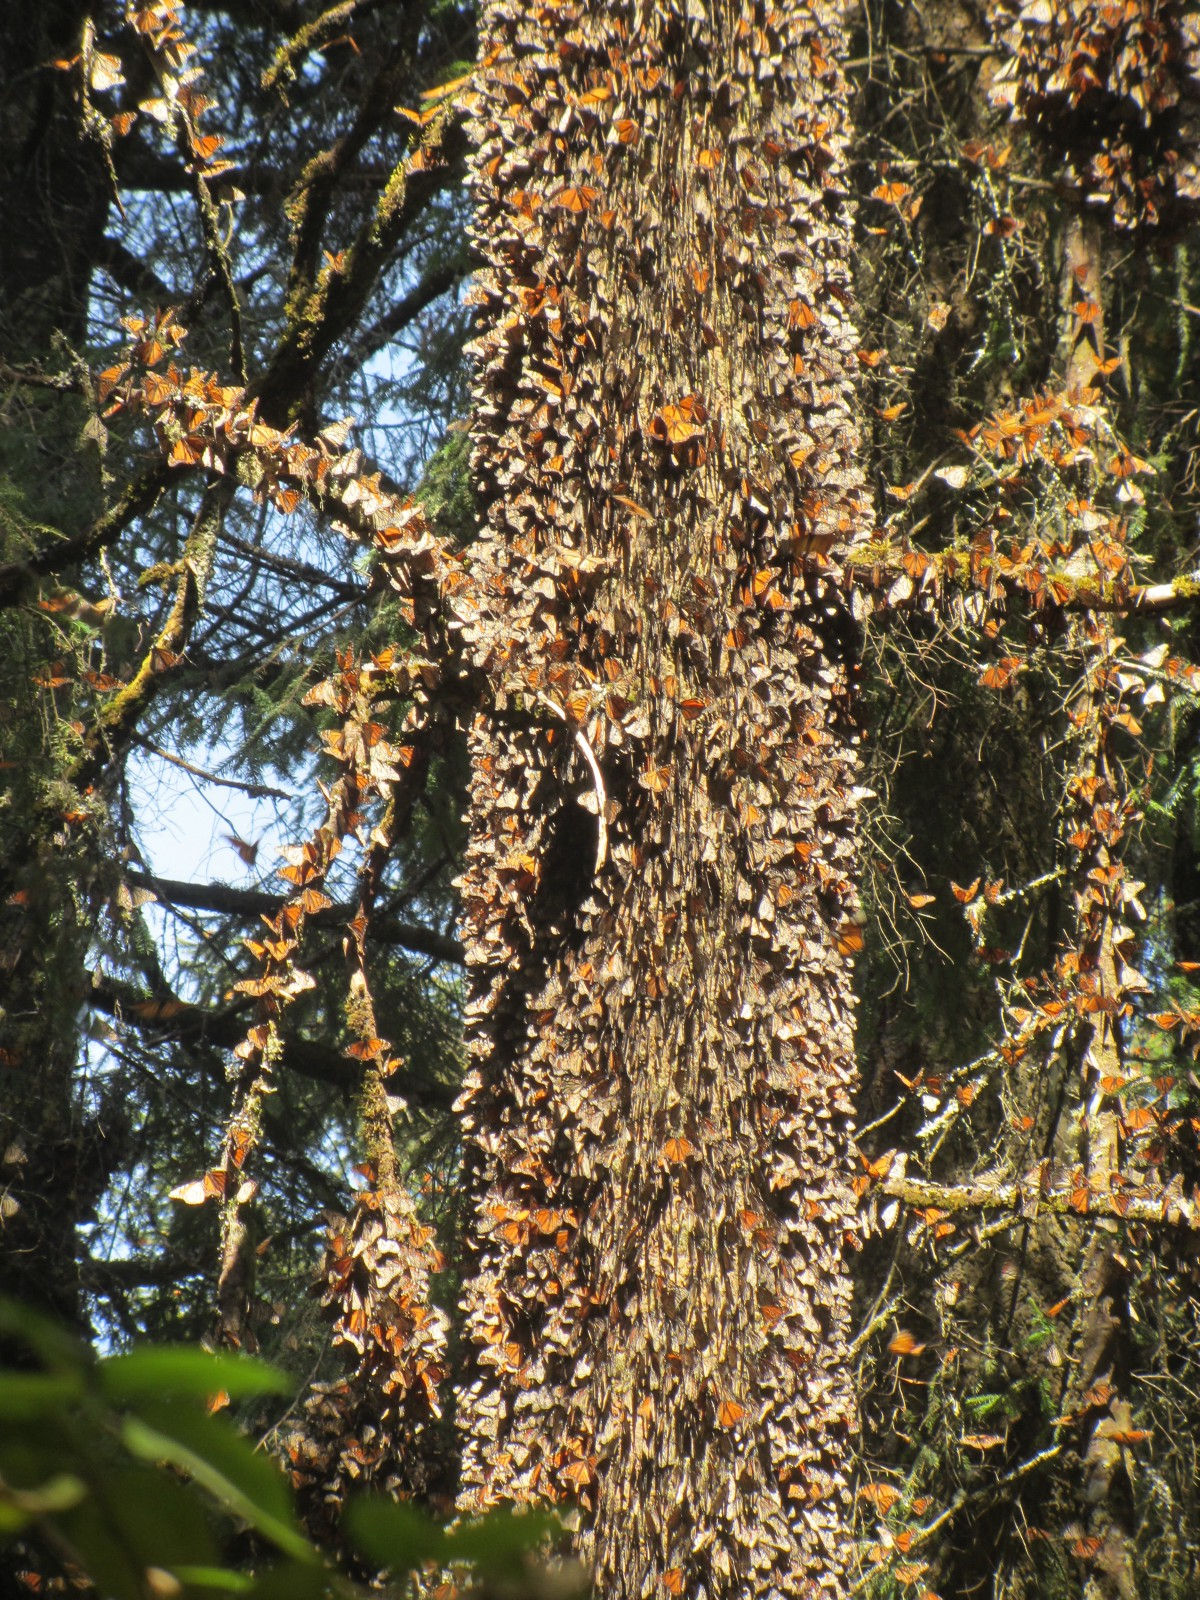 Monarch butterfly migration tree - photo#37